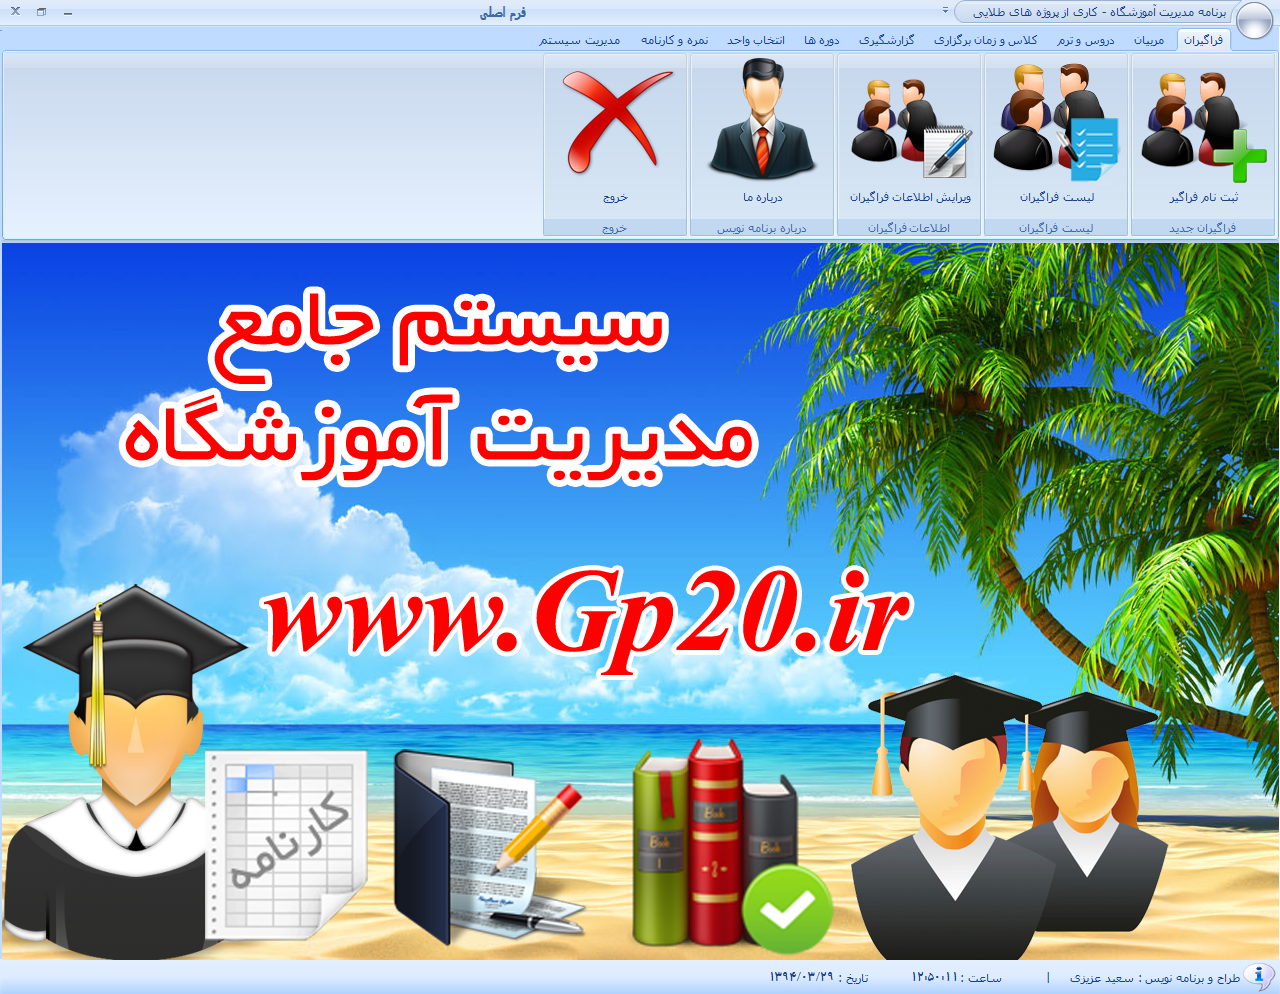 http://dl.gp20.ir/PostPicture/special-pic/amozeshghah.png